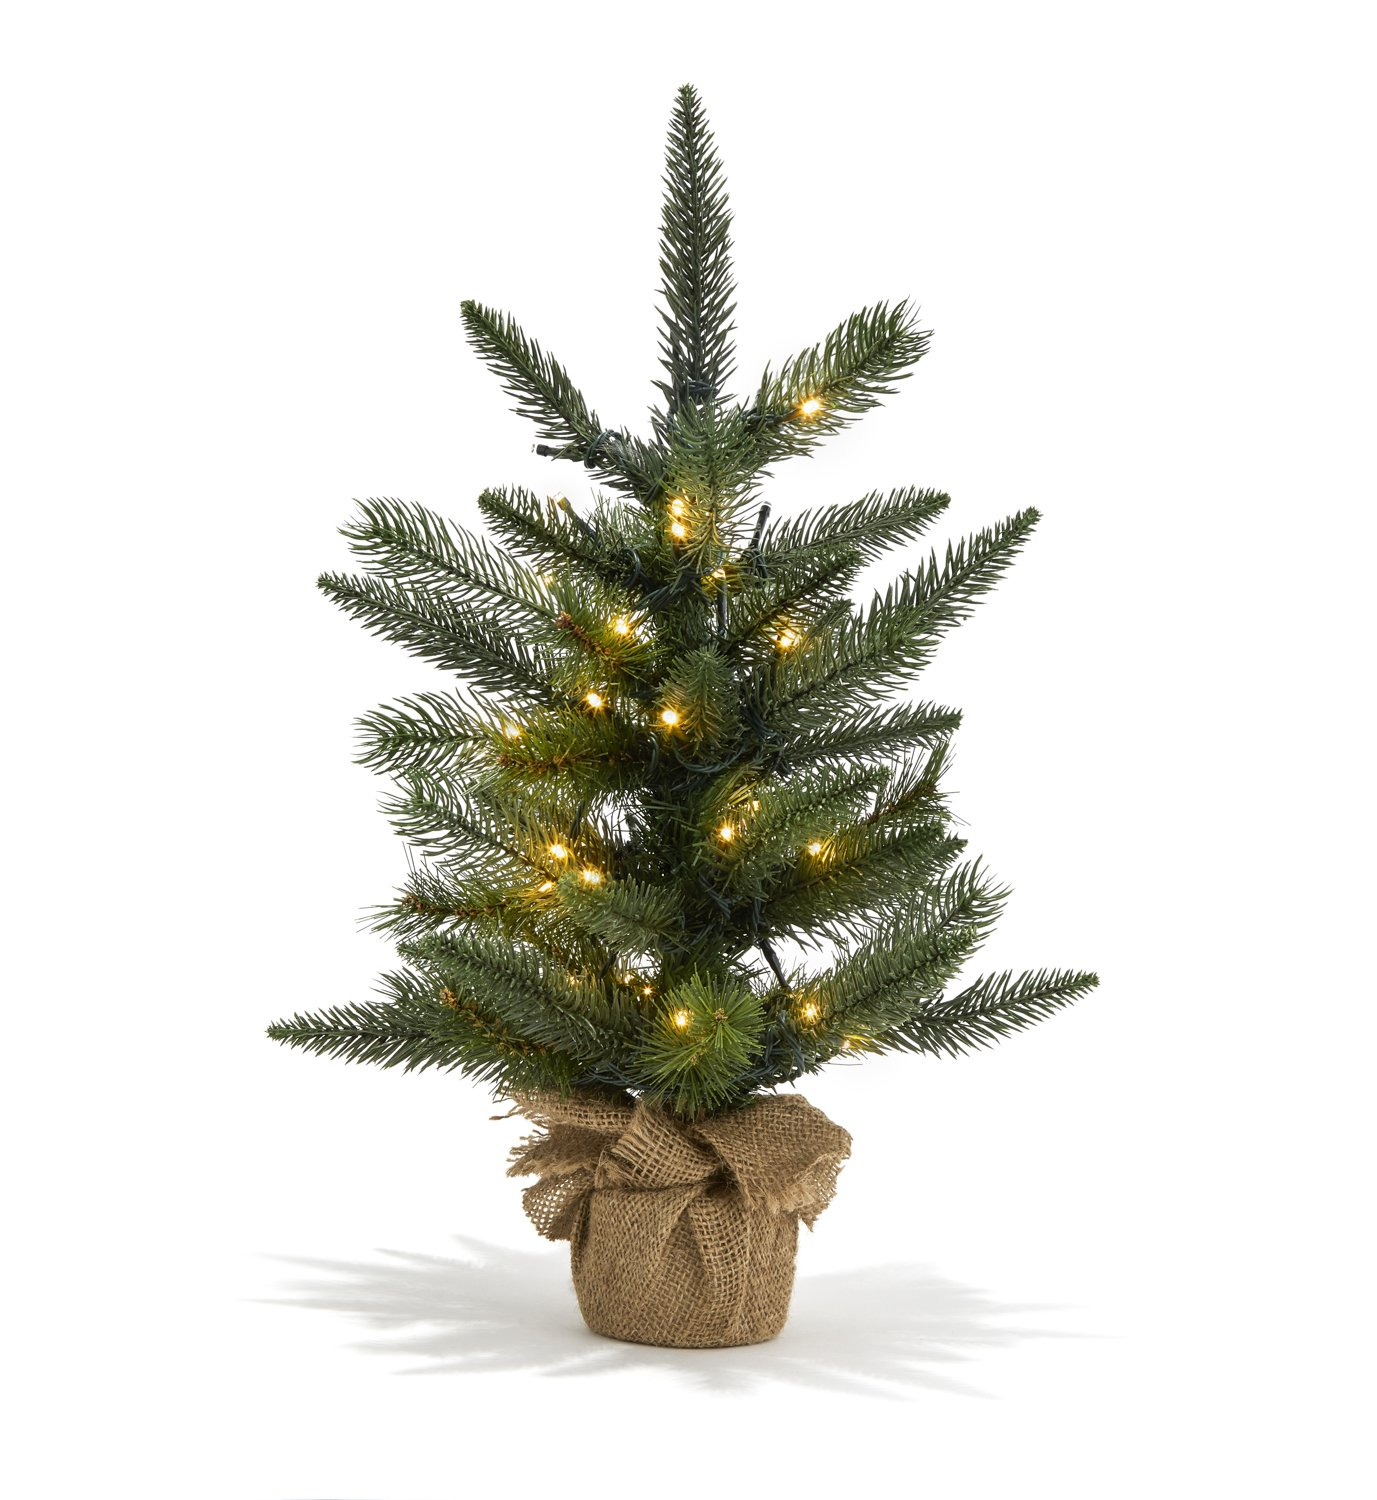 LampLust 18'' Pre-Lit Christmas Pine Tree with Warm White LEDs | Indoor Use, Convertible Power Options, Battery Box and Plug Included - for Windowsills, Mantle Display and Table Tops